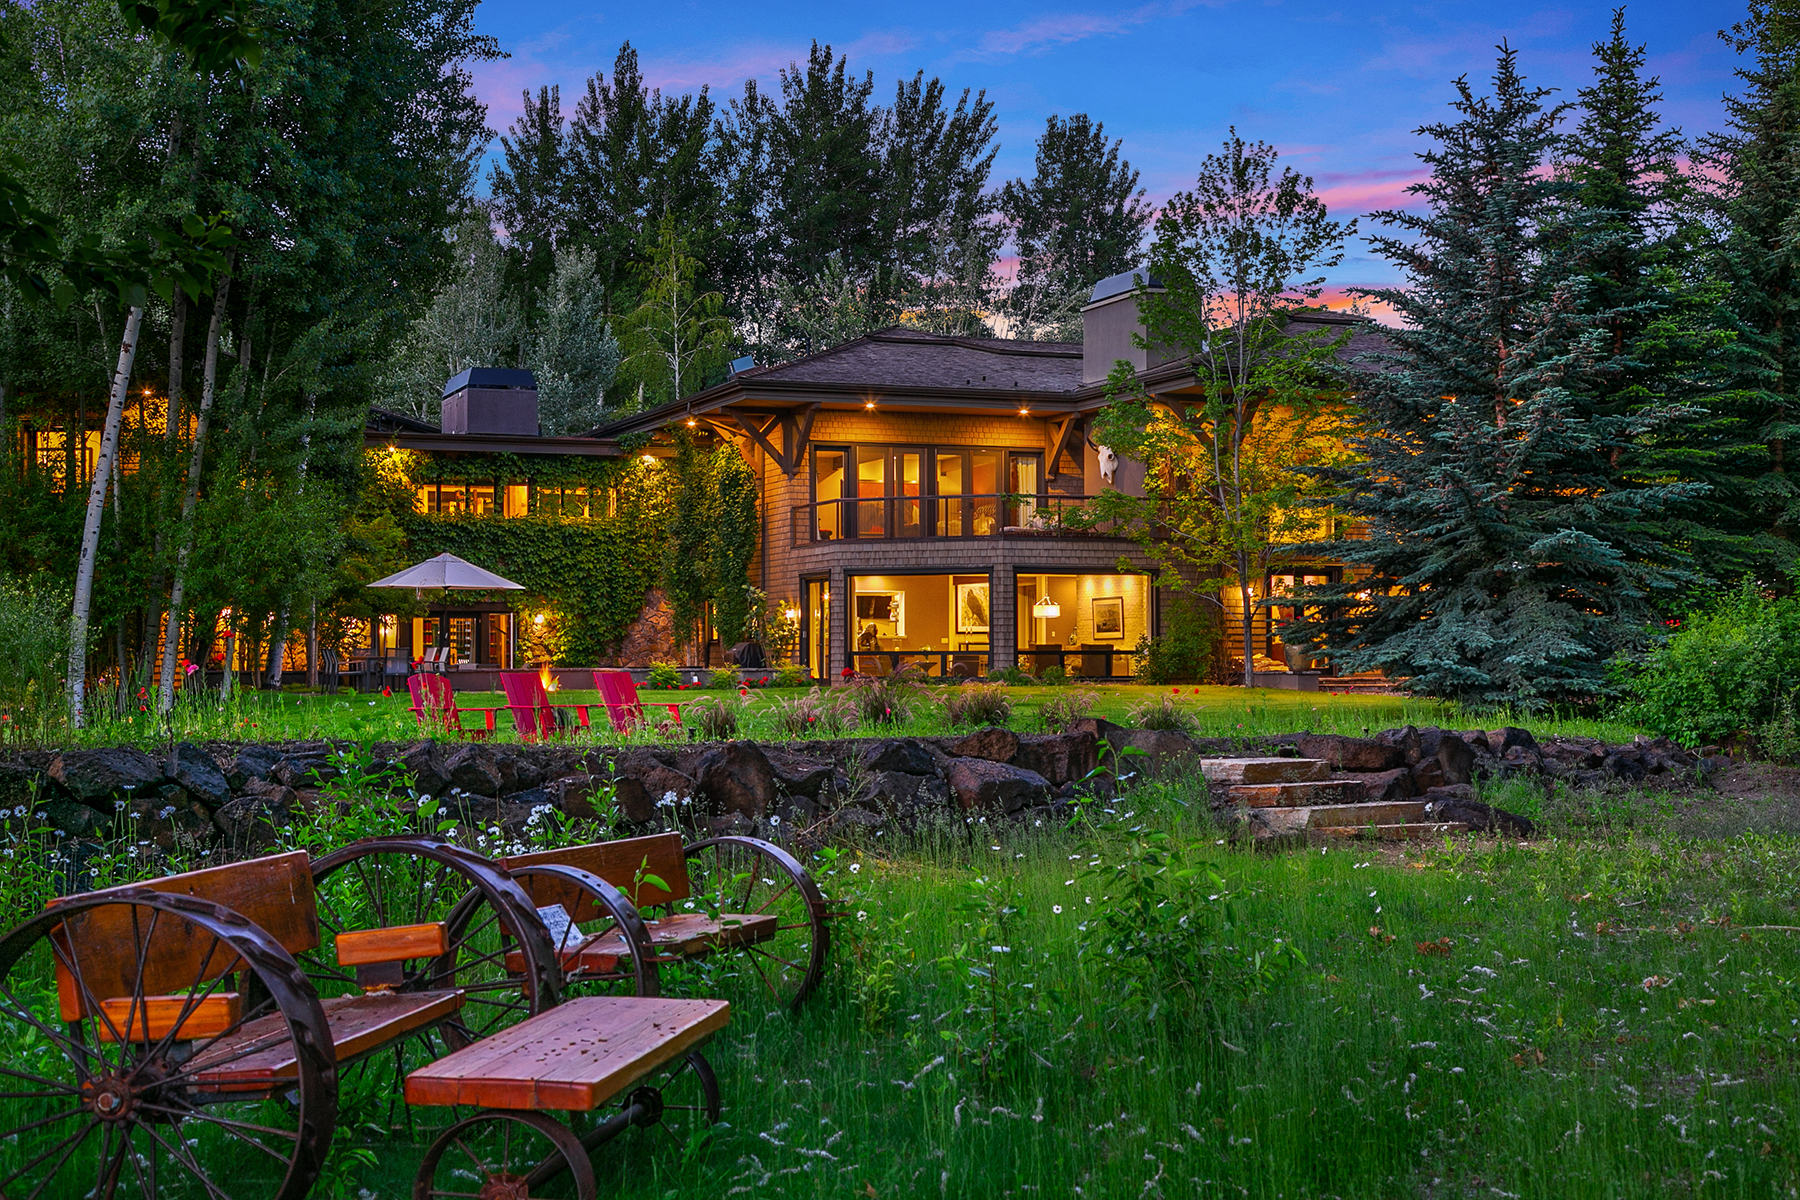 Single Family Homes for Sale at Riverfront Retreat Compound 221 & 225 Sutton Pl Ketchum, Idaho 83340 United States